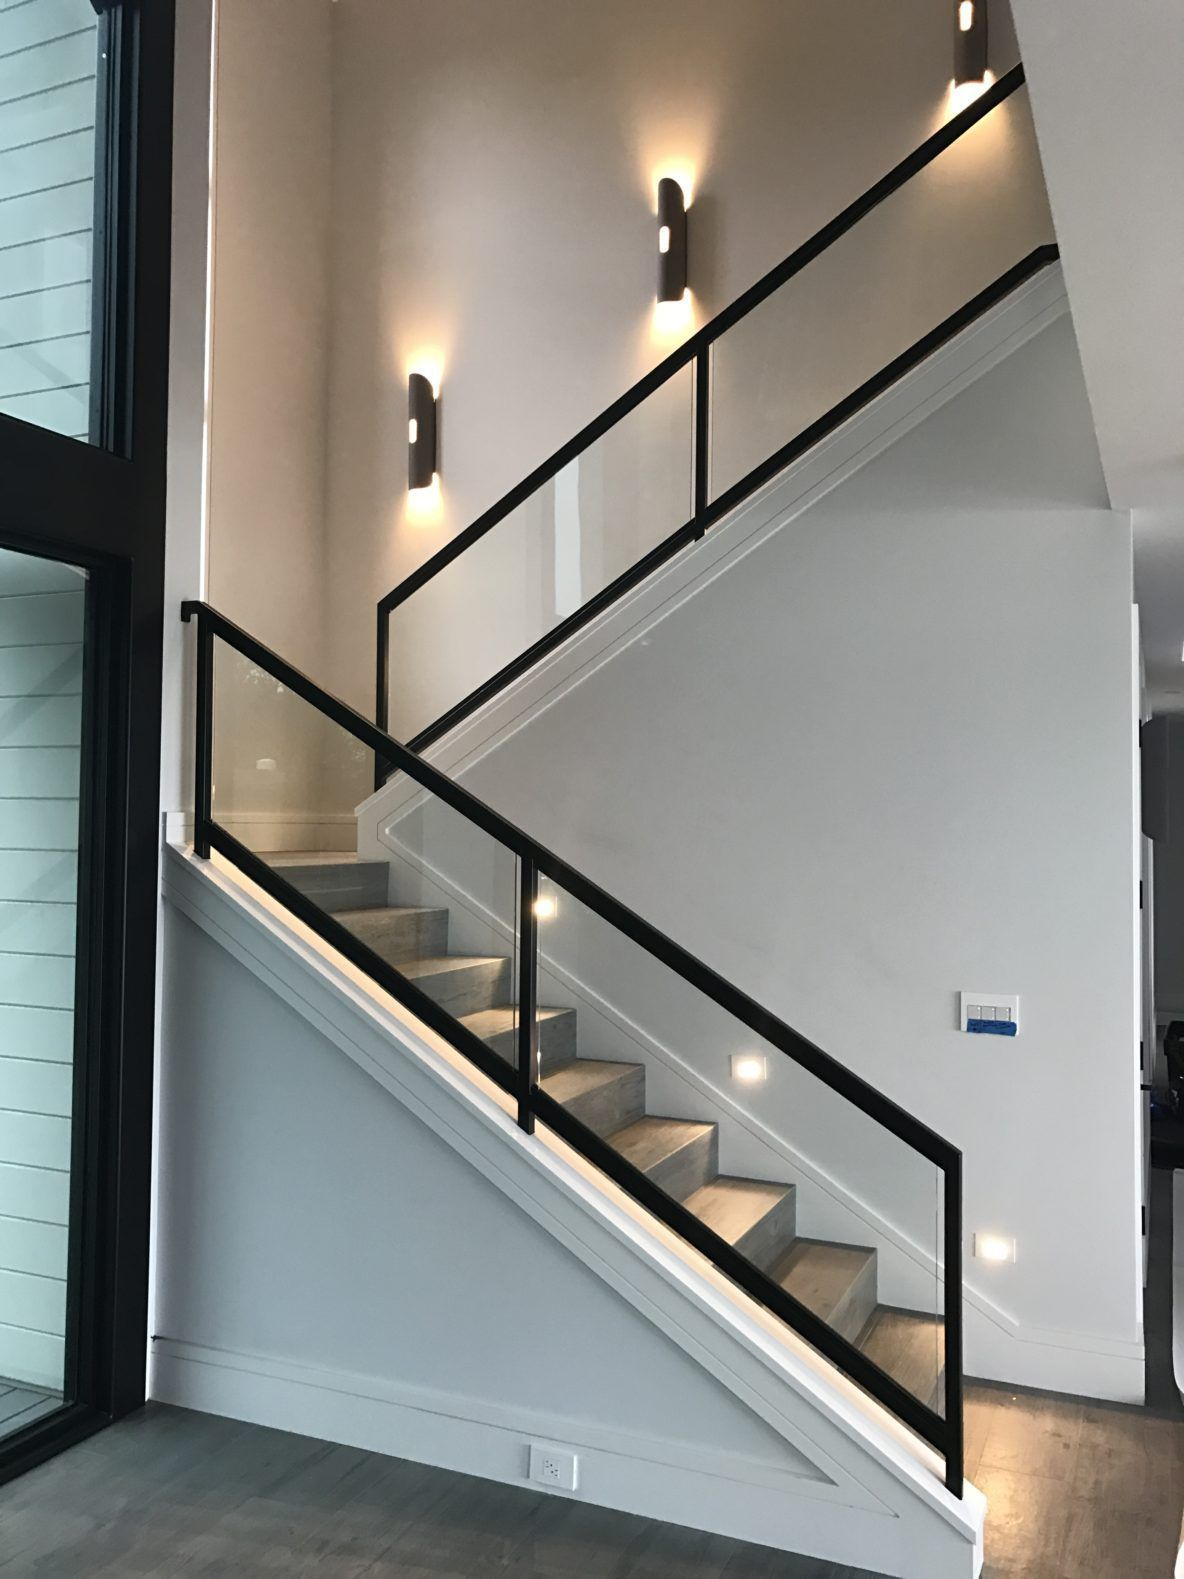 Modern Staircase Design Ideas Modern Staircases Are Available In Lots Of Design And Styles That Can Be Home Stairs Design Stair Railing Design Stairs Design